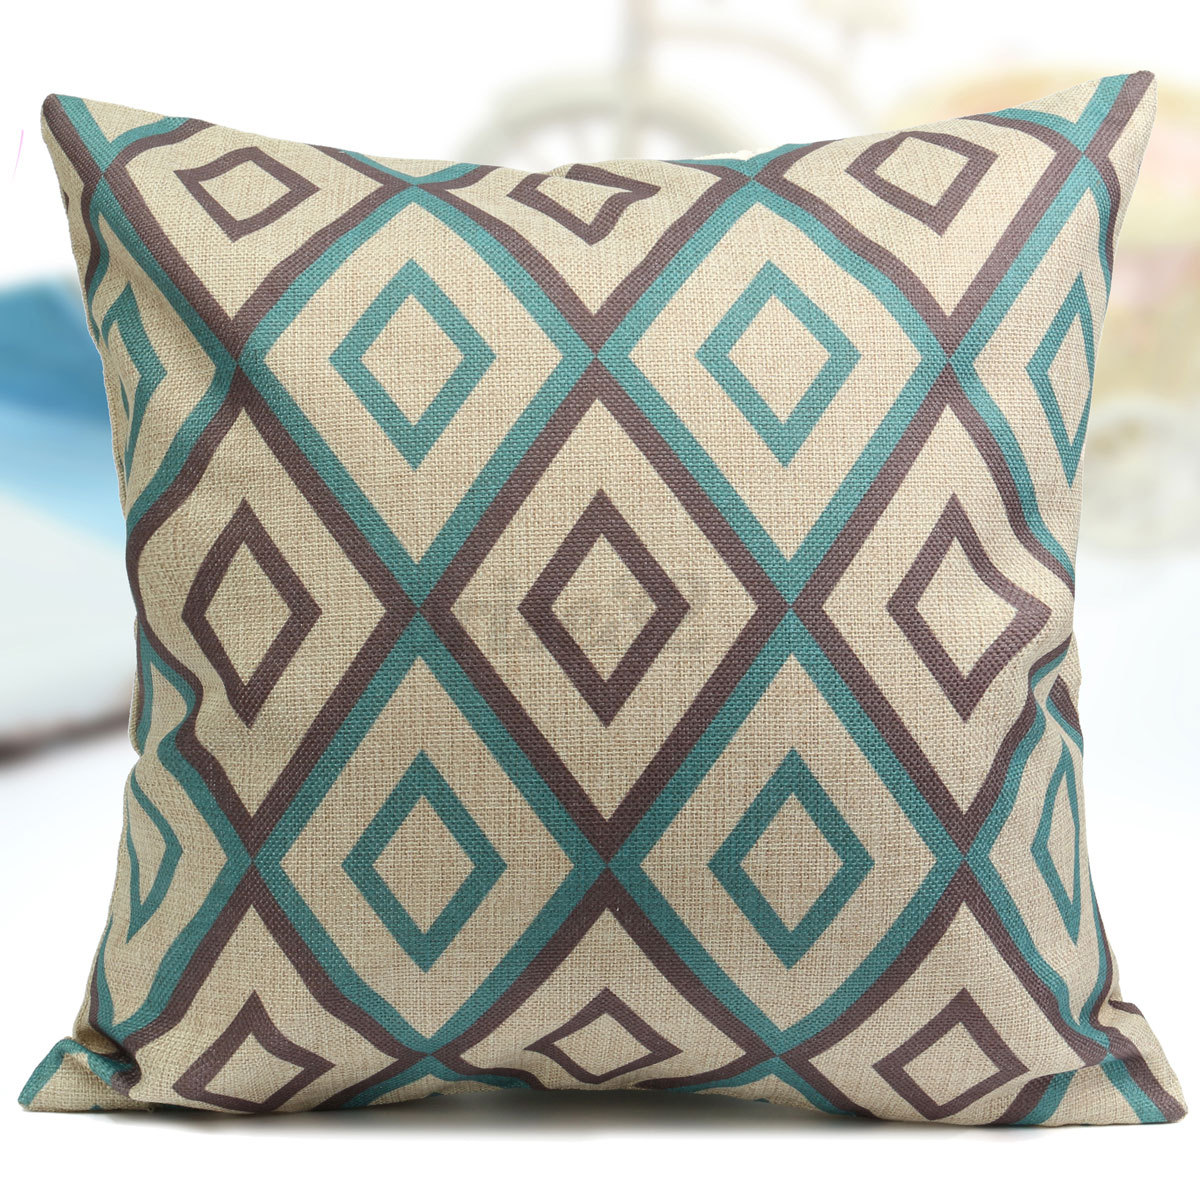 geometry aqua mint green home decor cotton linen cushion geometry aqua mint green home decor cotton linen cushion